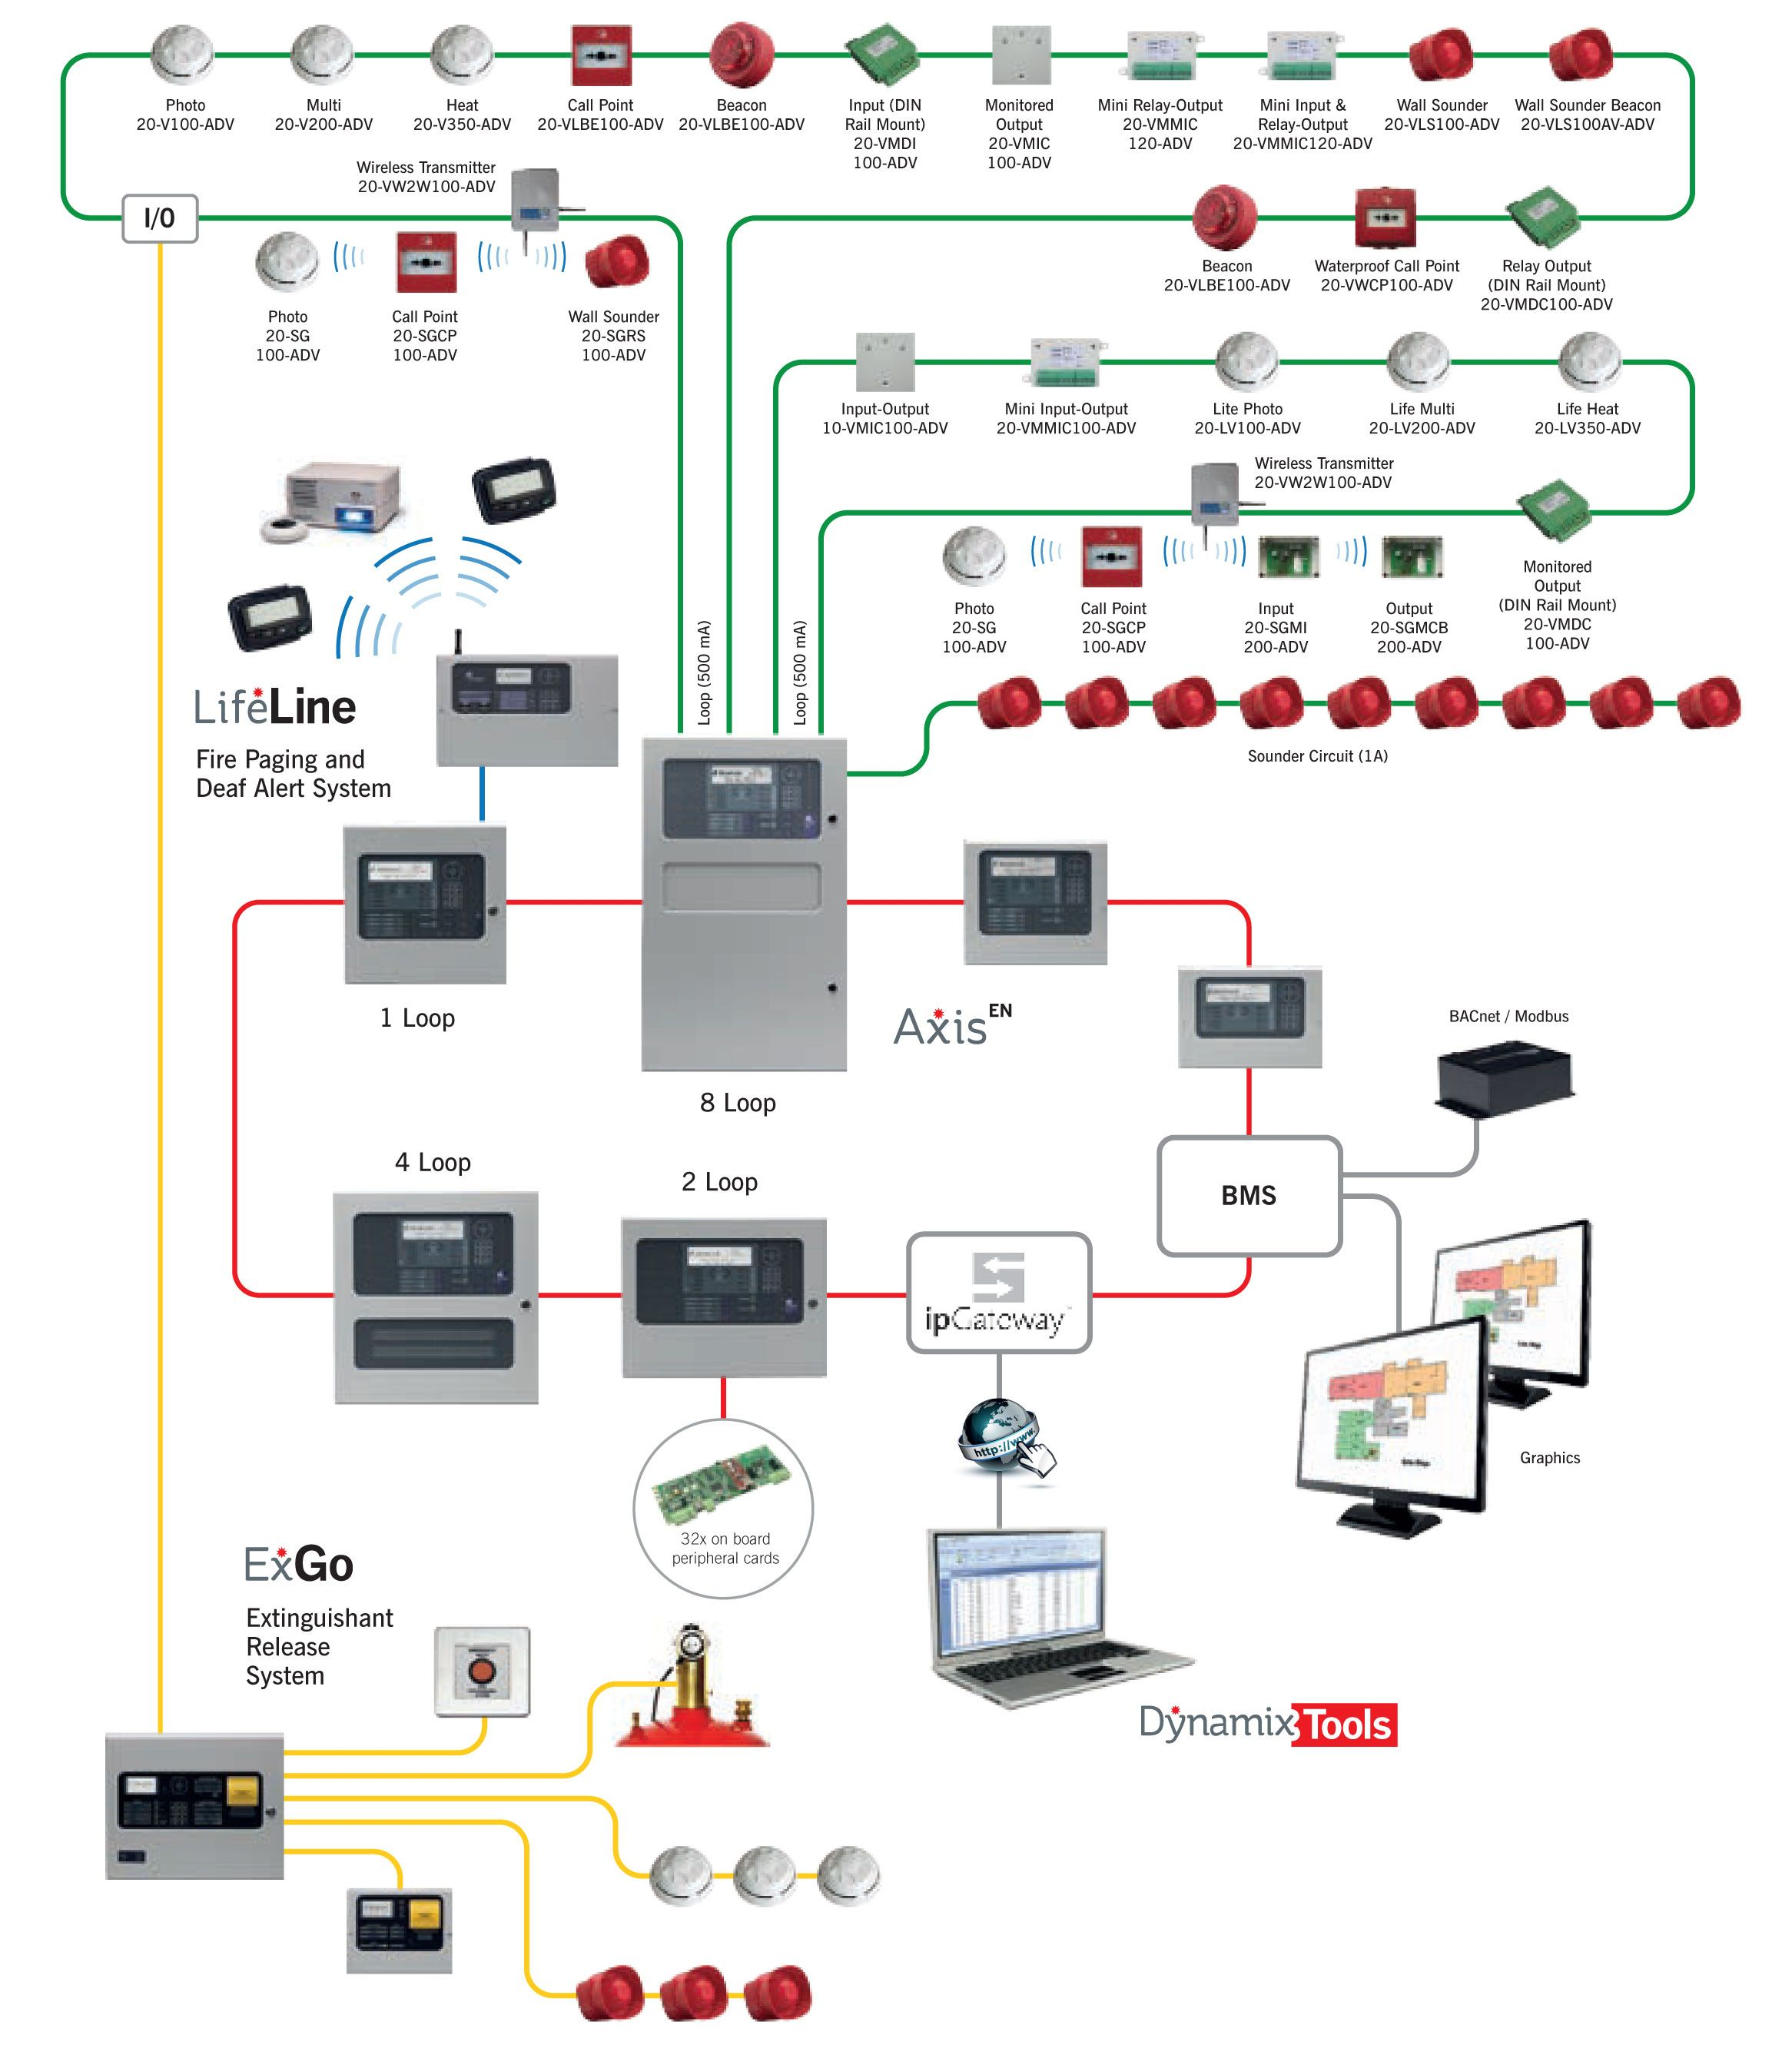 Get Fire Alarm Pull Station Wiring Diagram Download In 2020 Fire Alarm System Fire Alarm Alarm System